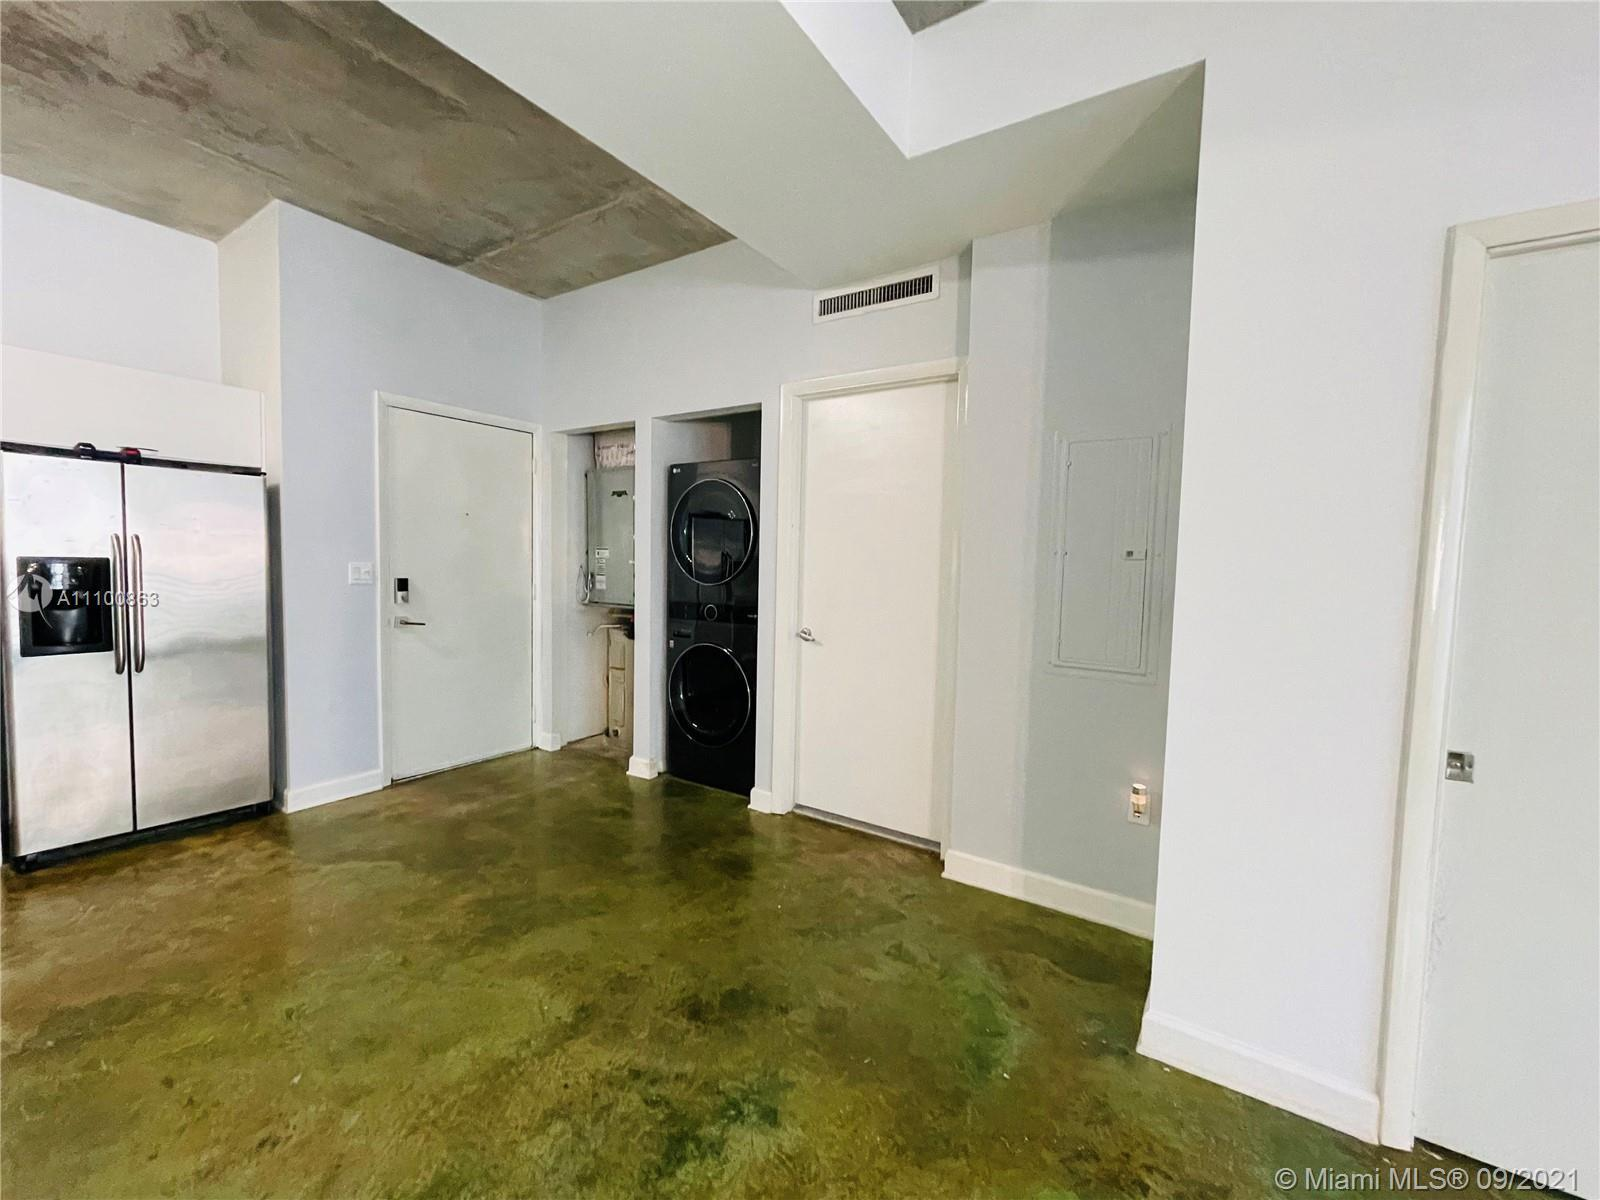 Beautifully updated and well-kept modern unit on the 8th floor. This one bedroom and one bathroom un